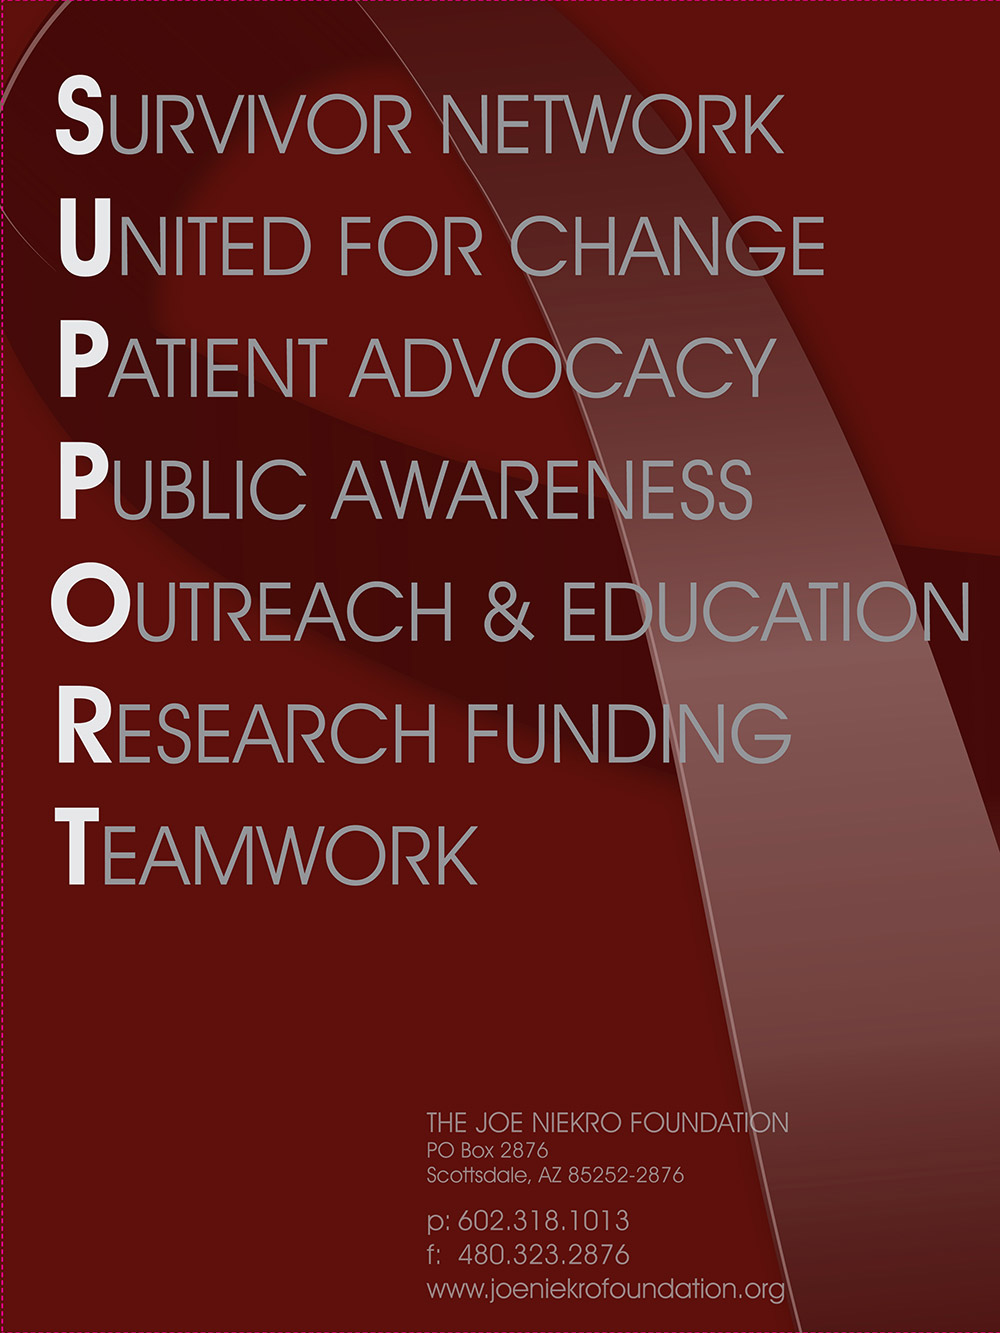 http://www.joeniekrofoundation.com/about-us/mission-statement/attachment/contact-us-2/